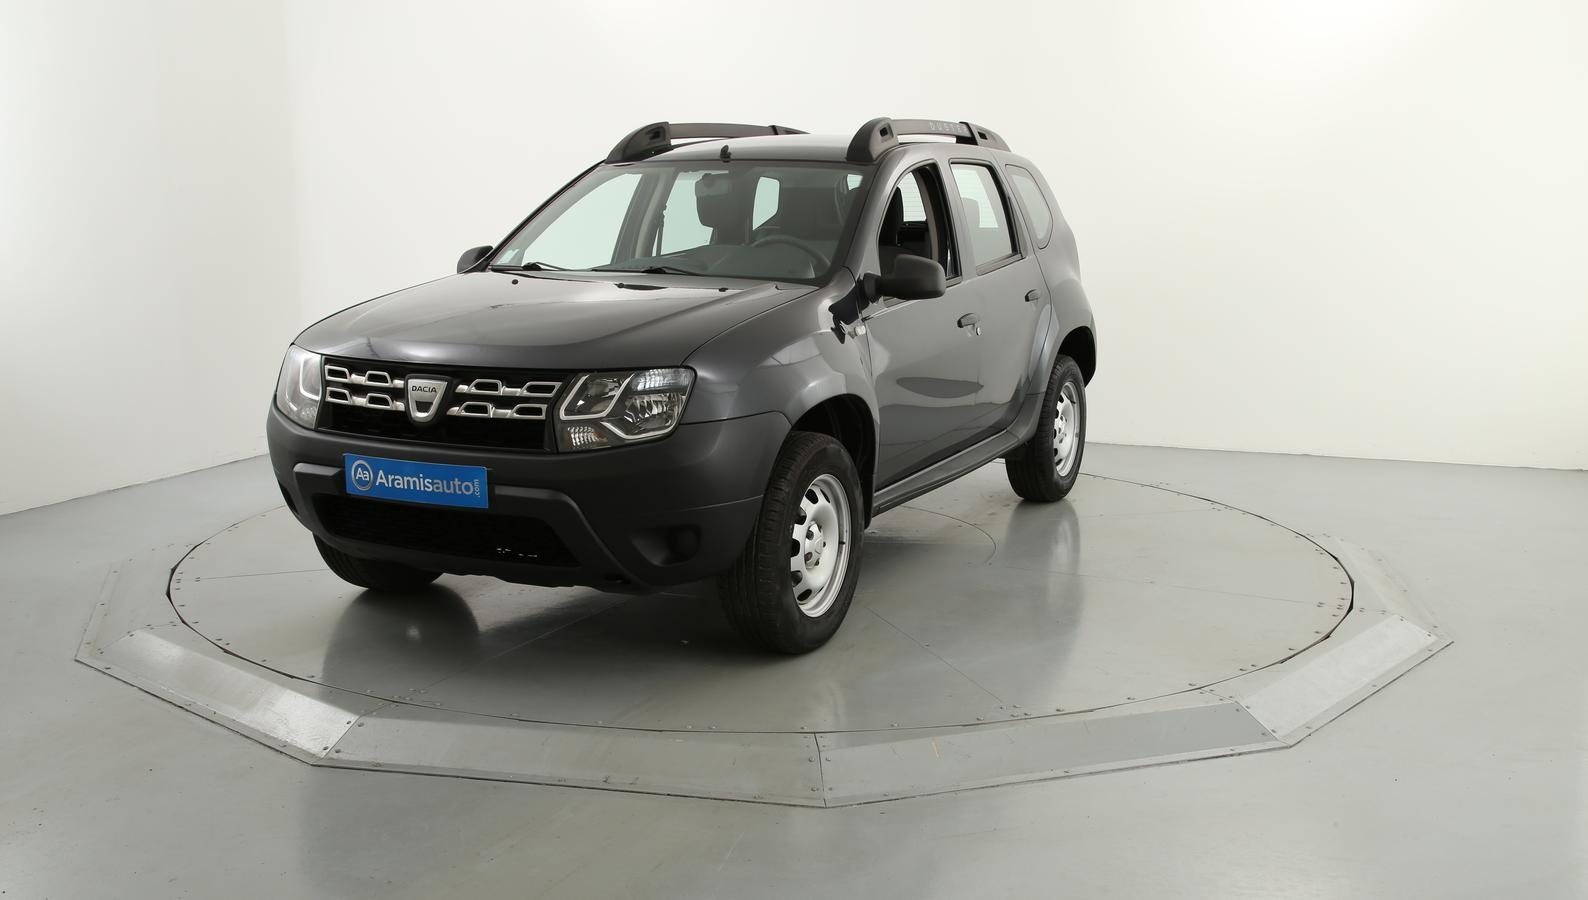 dacia duster 4x2 et suv 5 portes essence 1 6 16v 105 gpl 4x2 bo te manuelle finition. Black Bedroom Furniture Sets. Home Design Ideas